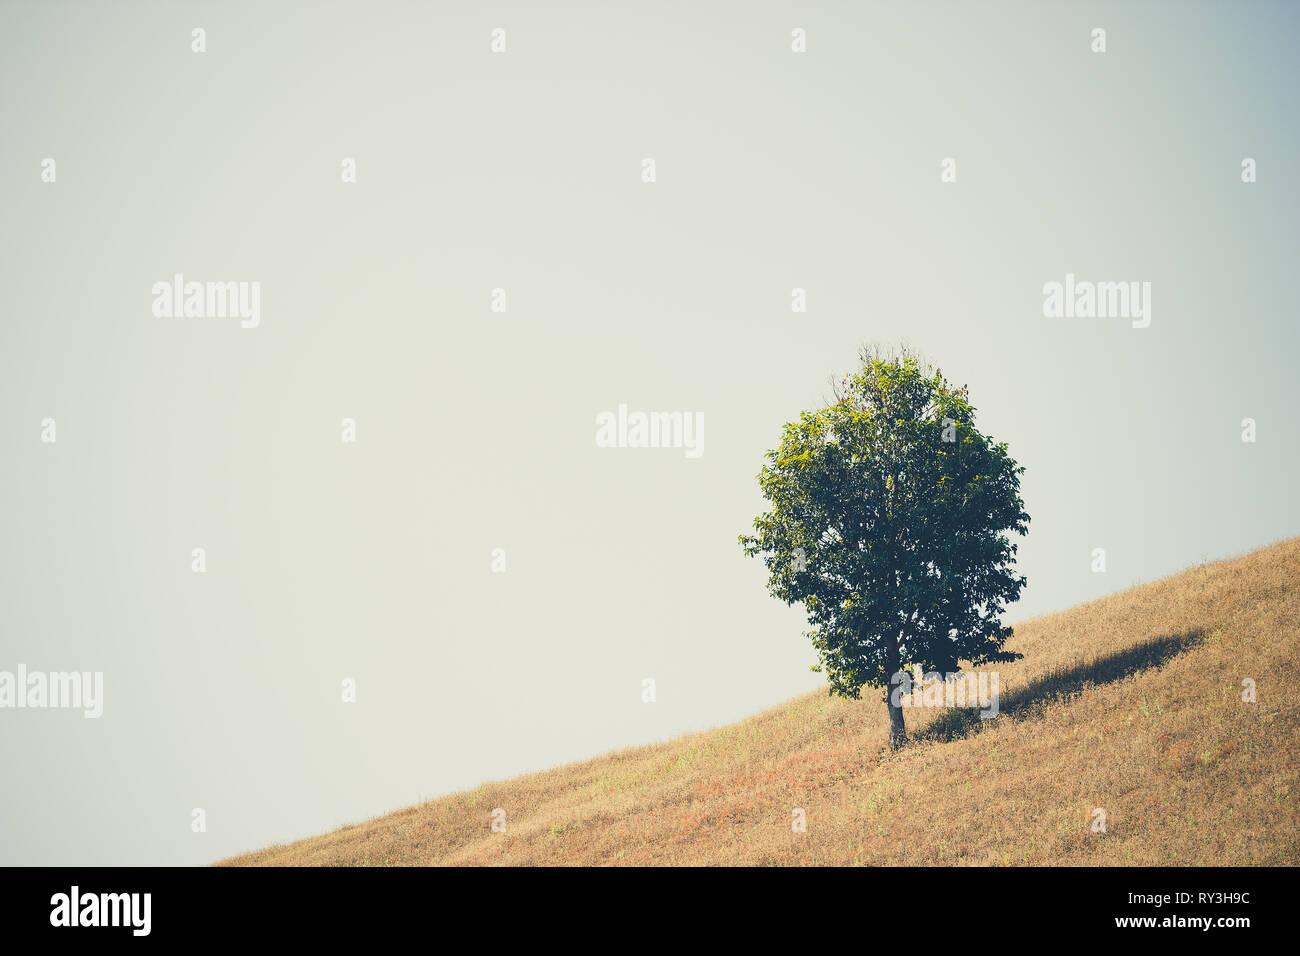 Trees in open space and the sky. The concept of seclusion is truly blissful. Copy spaces for text. - Stock Image